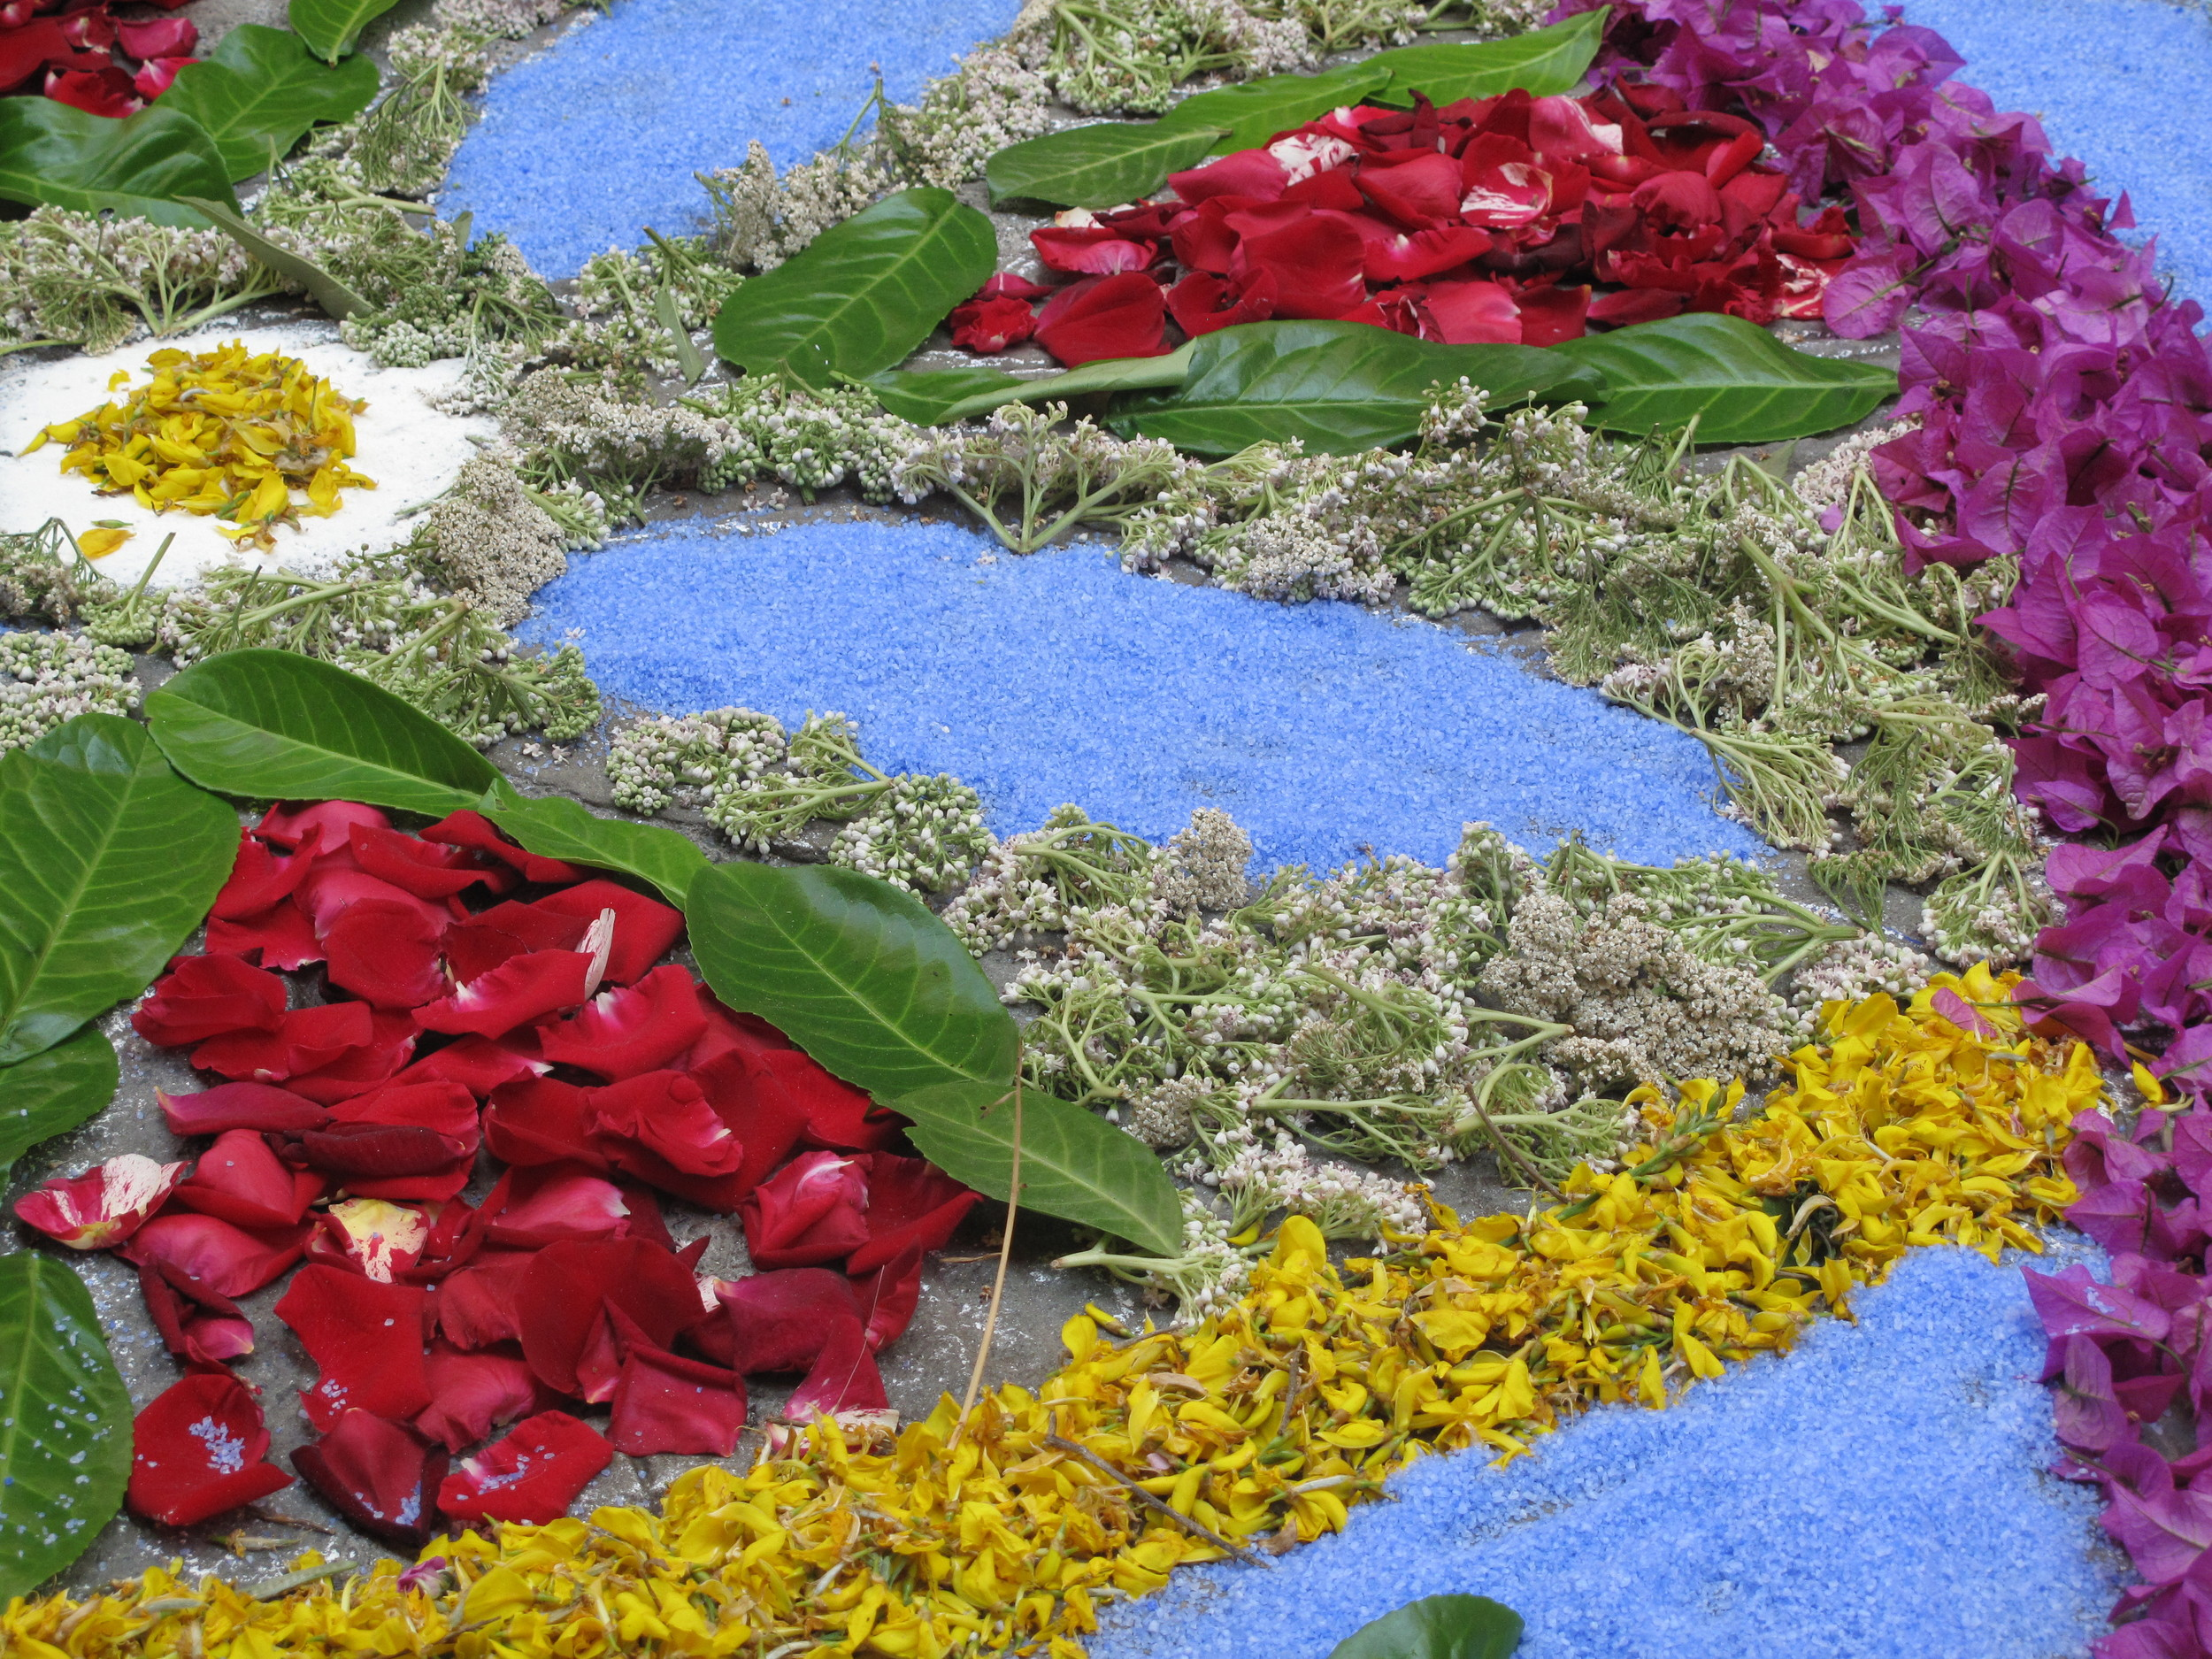 Infiorata colourful italian flower mandala made from petals, leaves and sand.